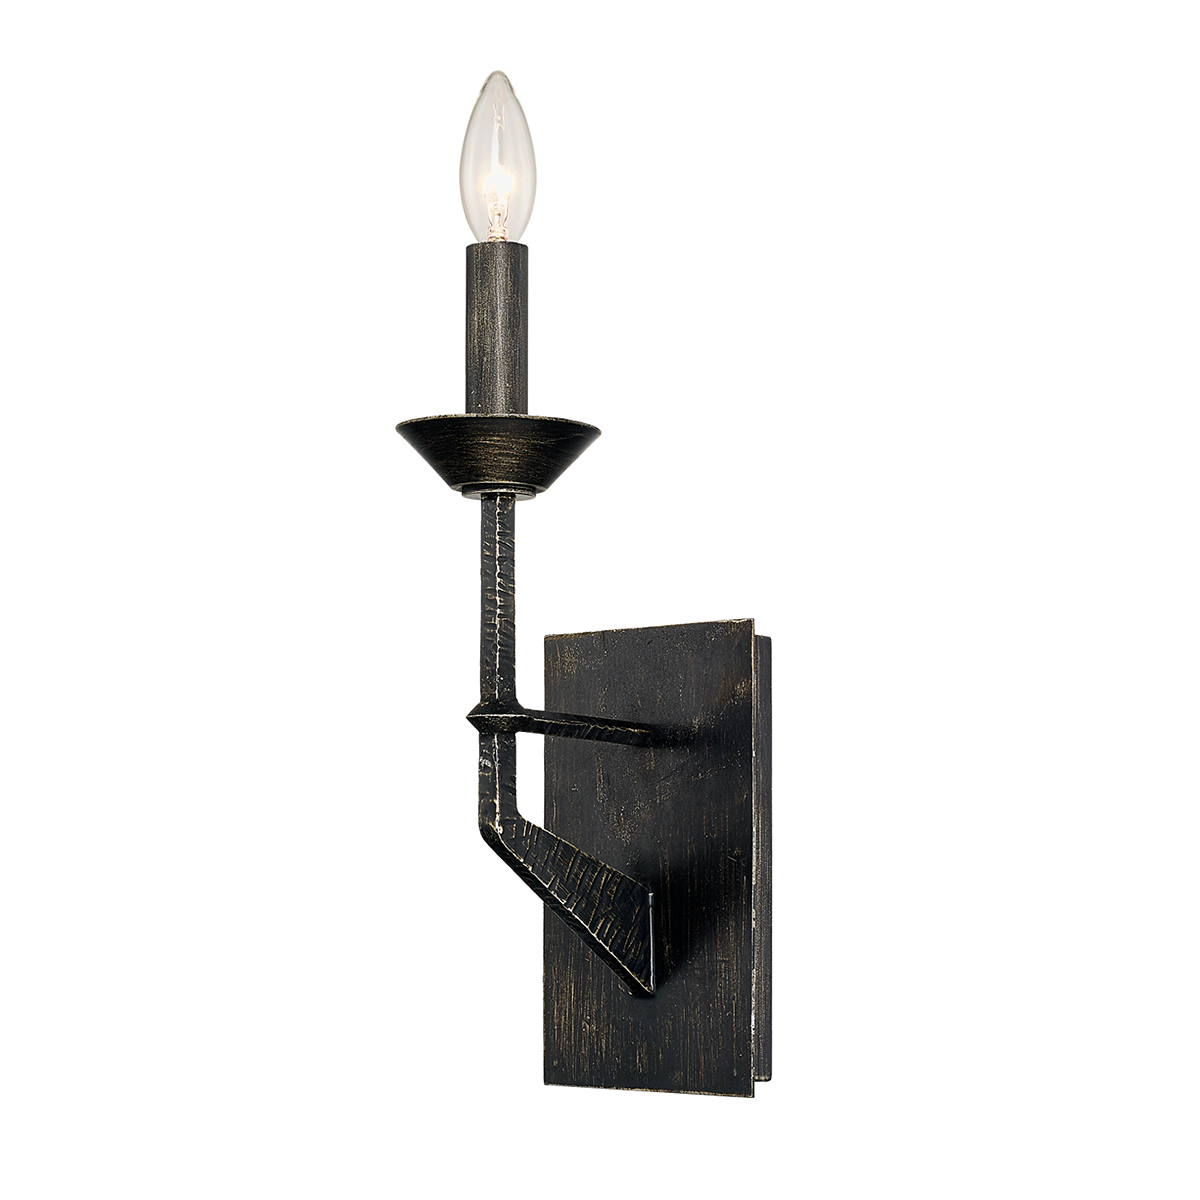 Commercial Lighting Glasgow: Glasgow Sconce By Troy Lighting